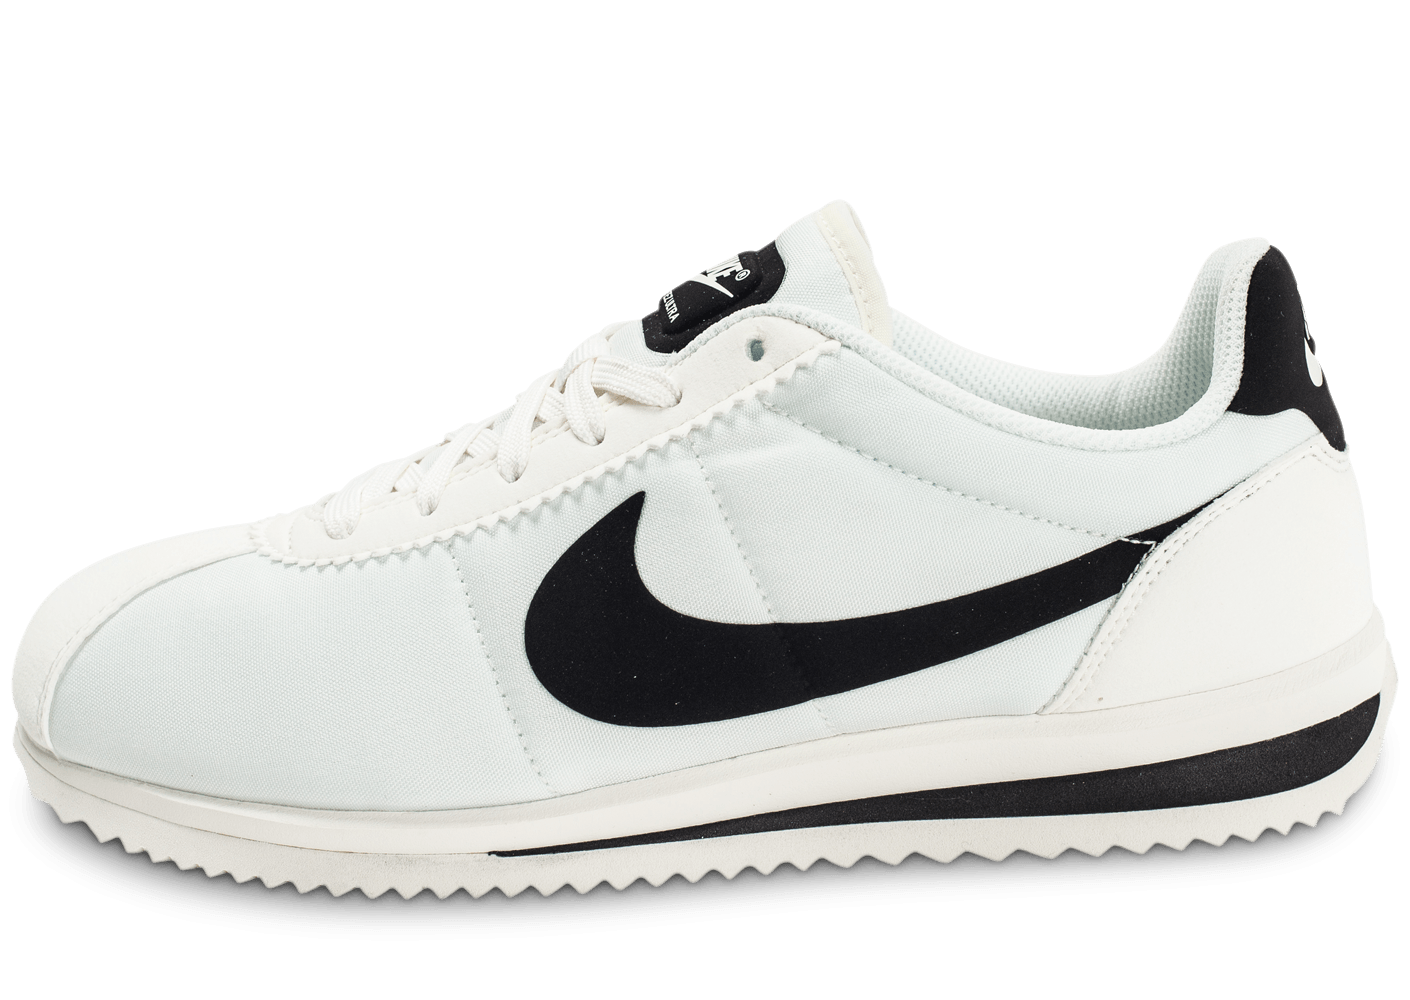 soldes nike cortez ultra sd cr me chaussures homme chausport. Black Bedroom Furniture Sets. Home Design Ideas